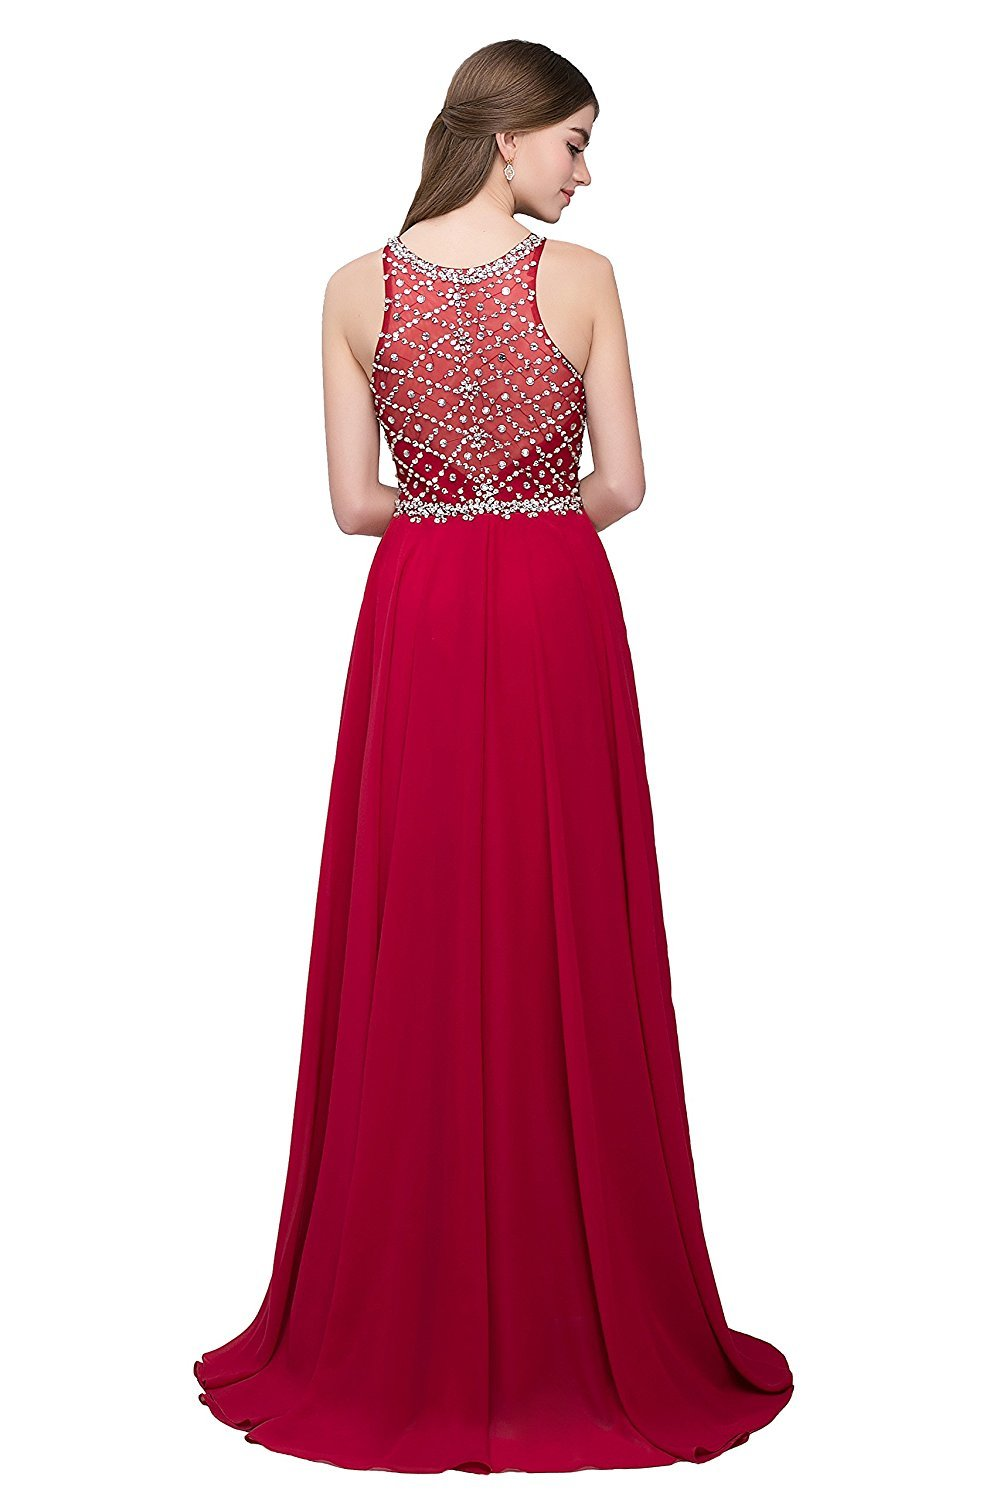 Women's Scoop Neckline Beaded Evening Gown Long Chiffon Red Prom Dresses 2018